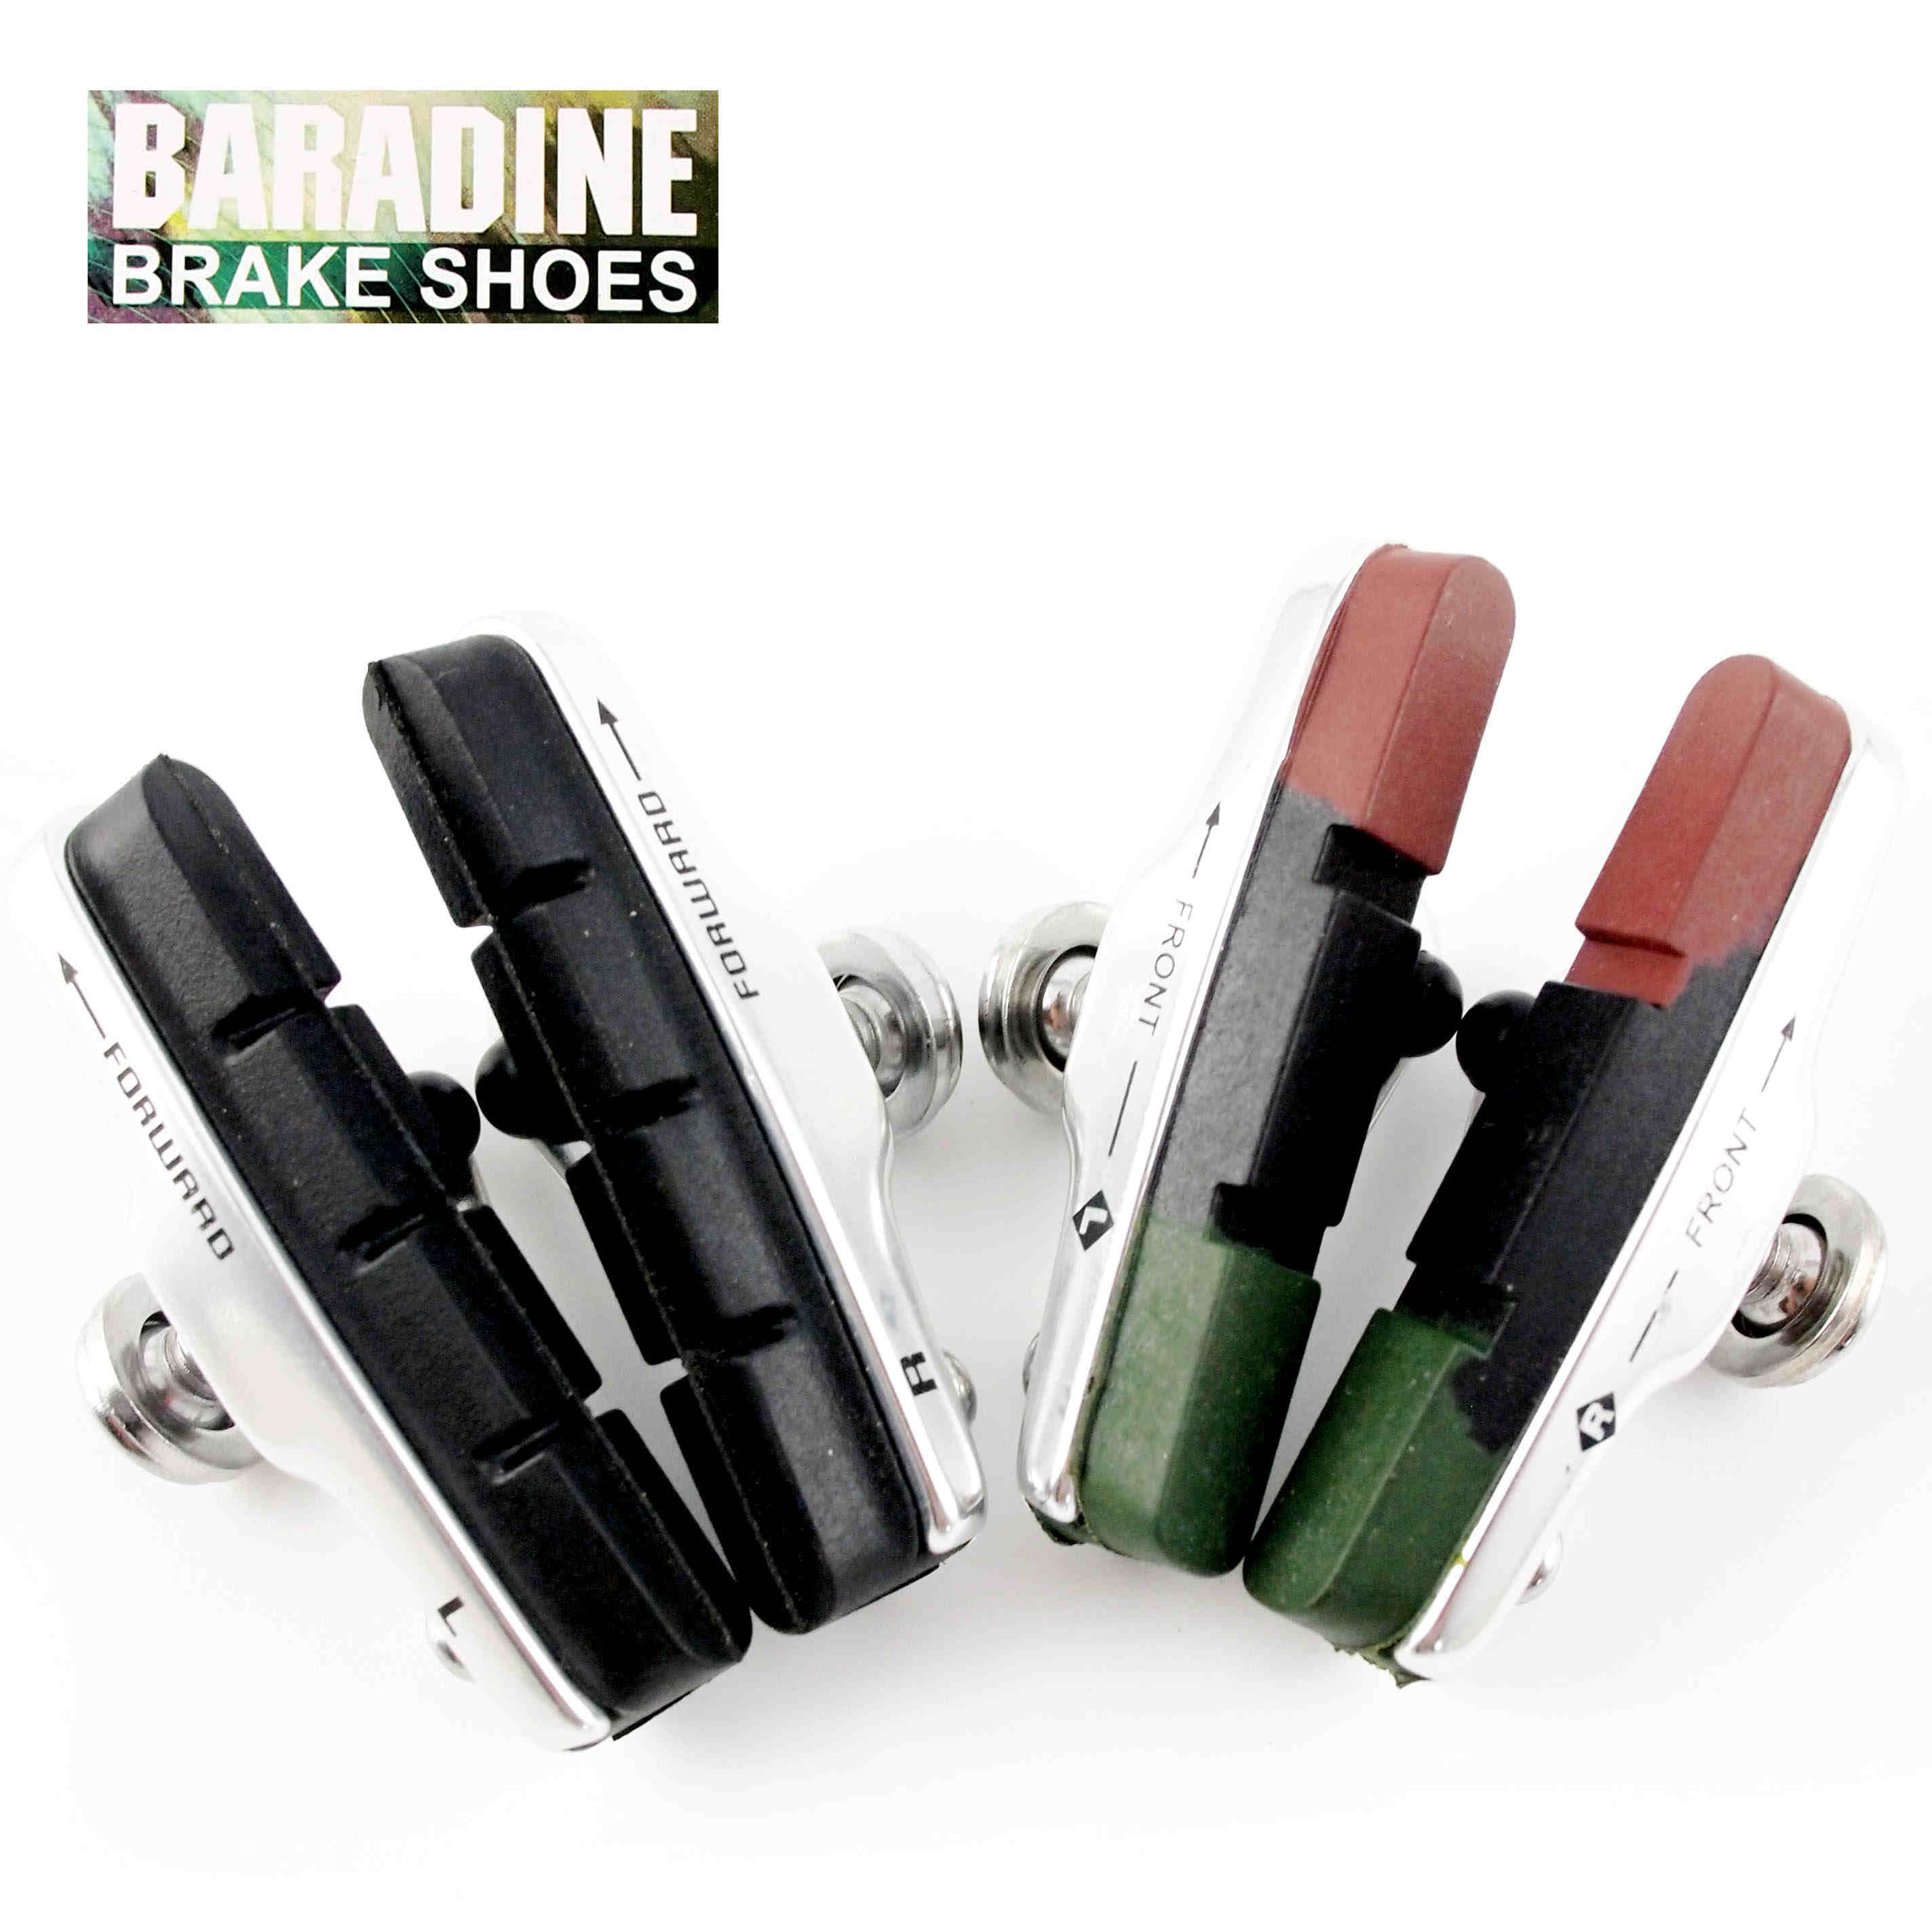 Taiwan baradine yongjie road bike brake pads brake blocks silent v brake rubber from driving accessories equipment